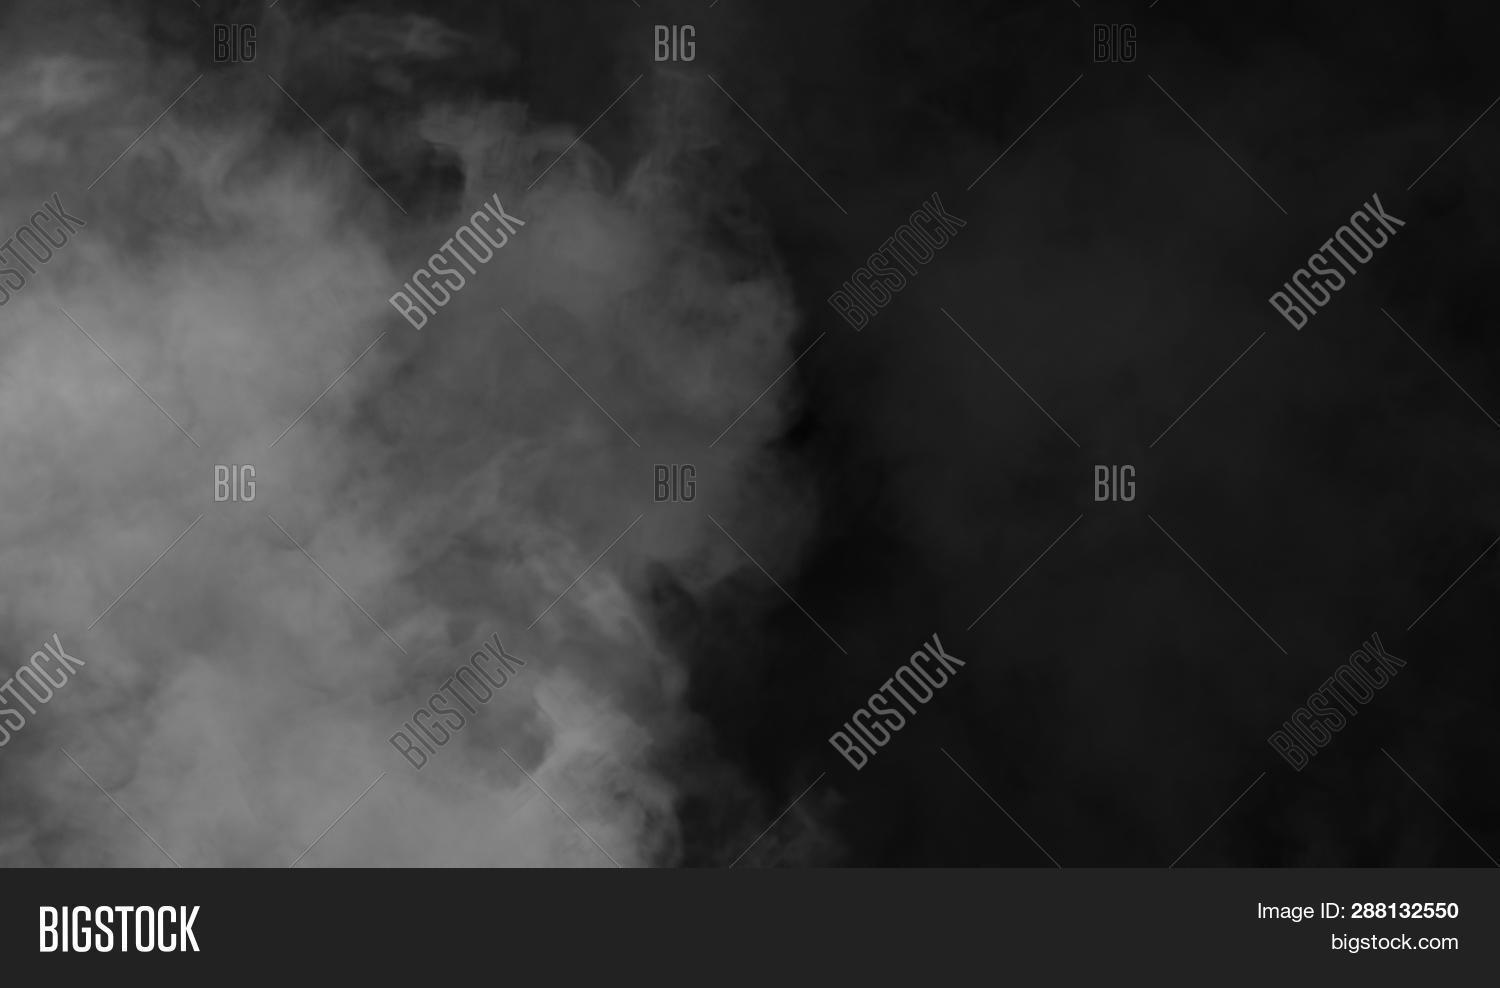 Abstract Smoke Texture Image & Photo (Free Trial) | Bigstock